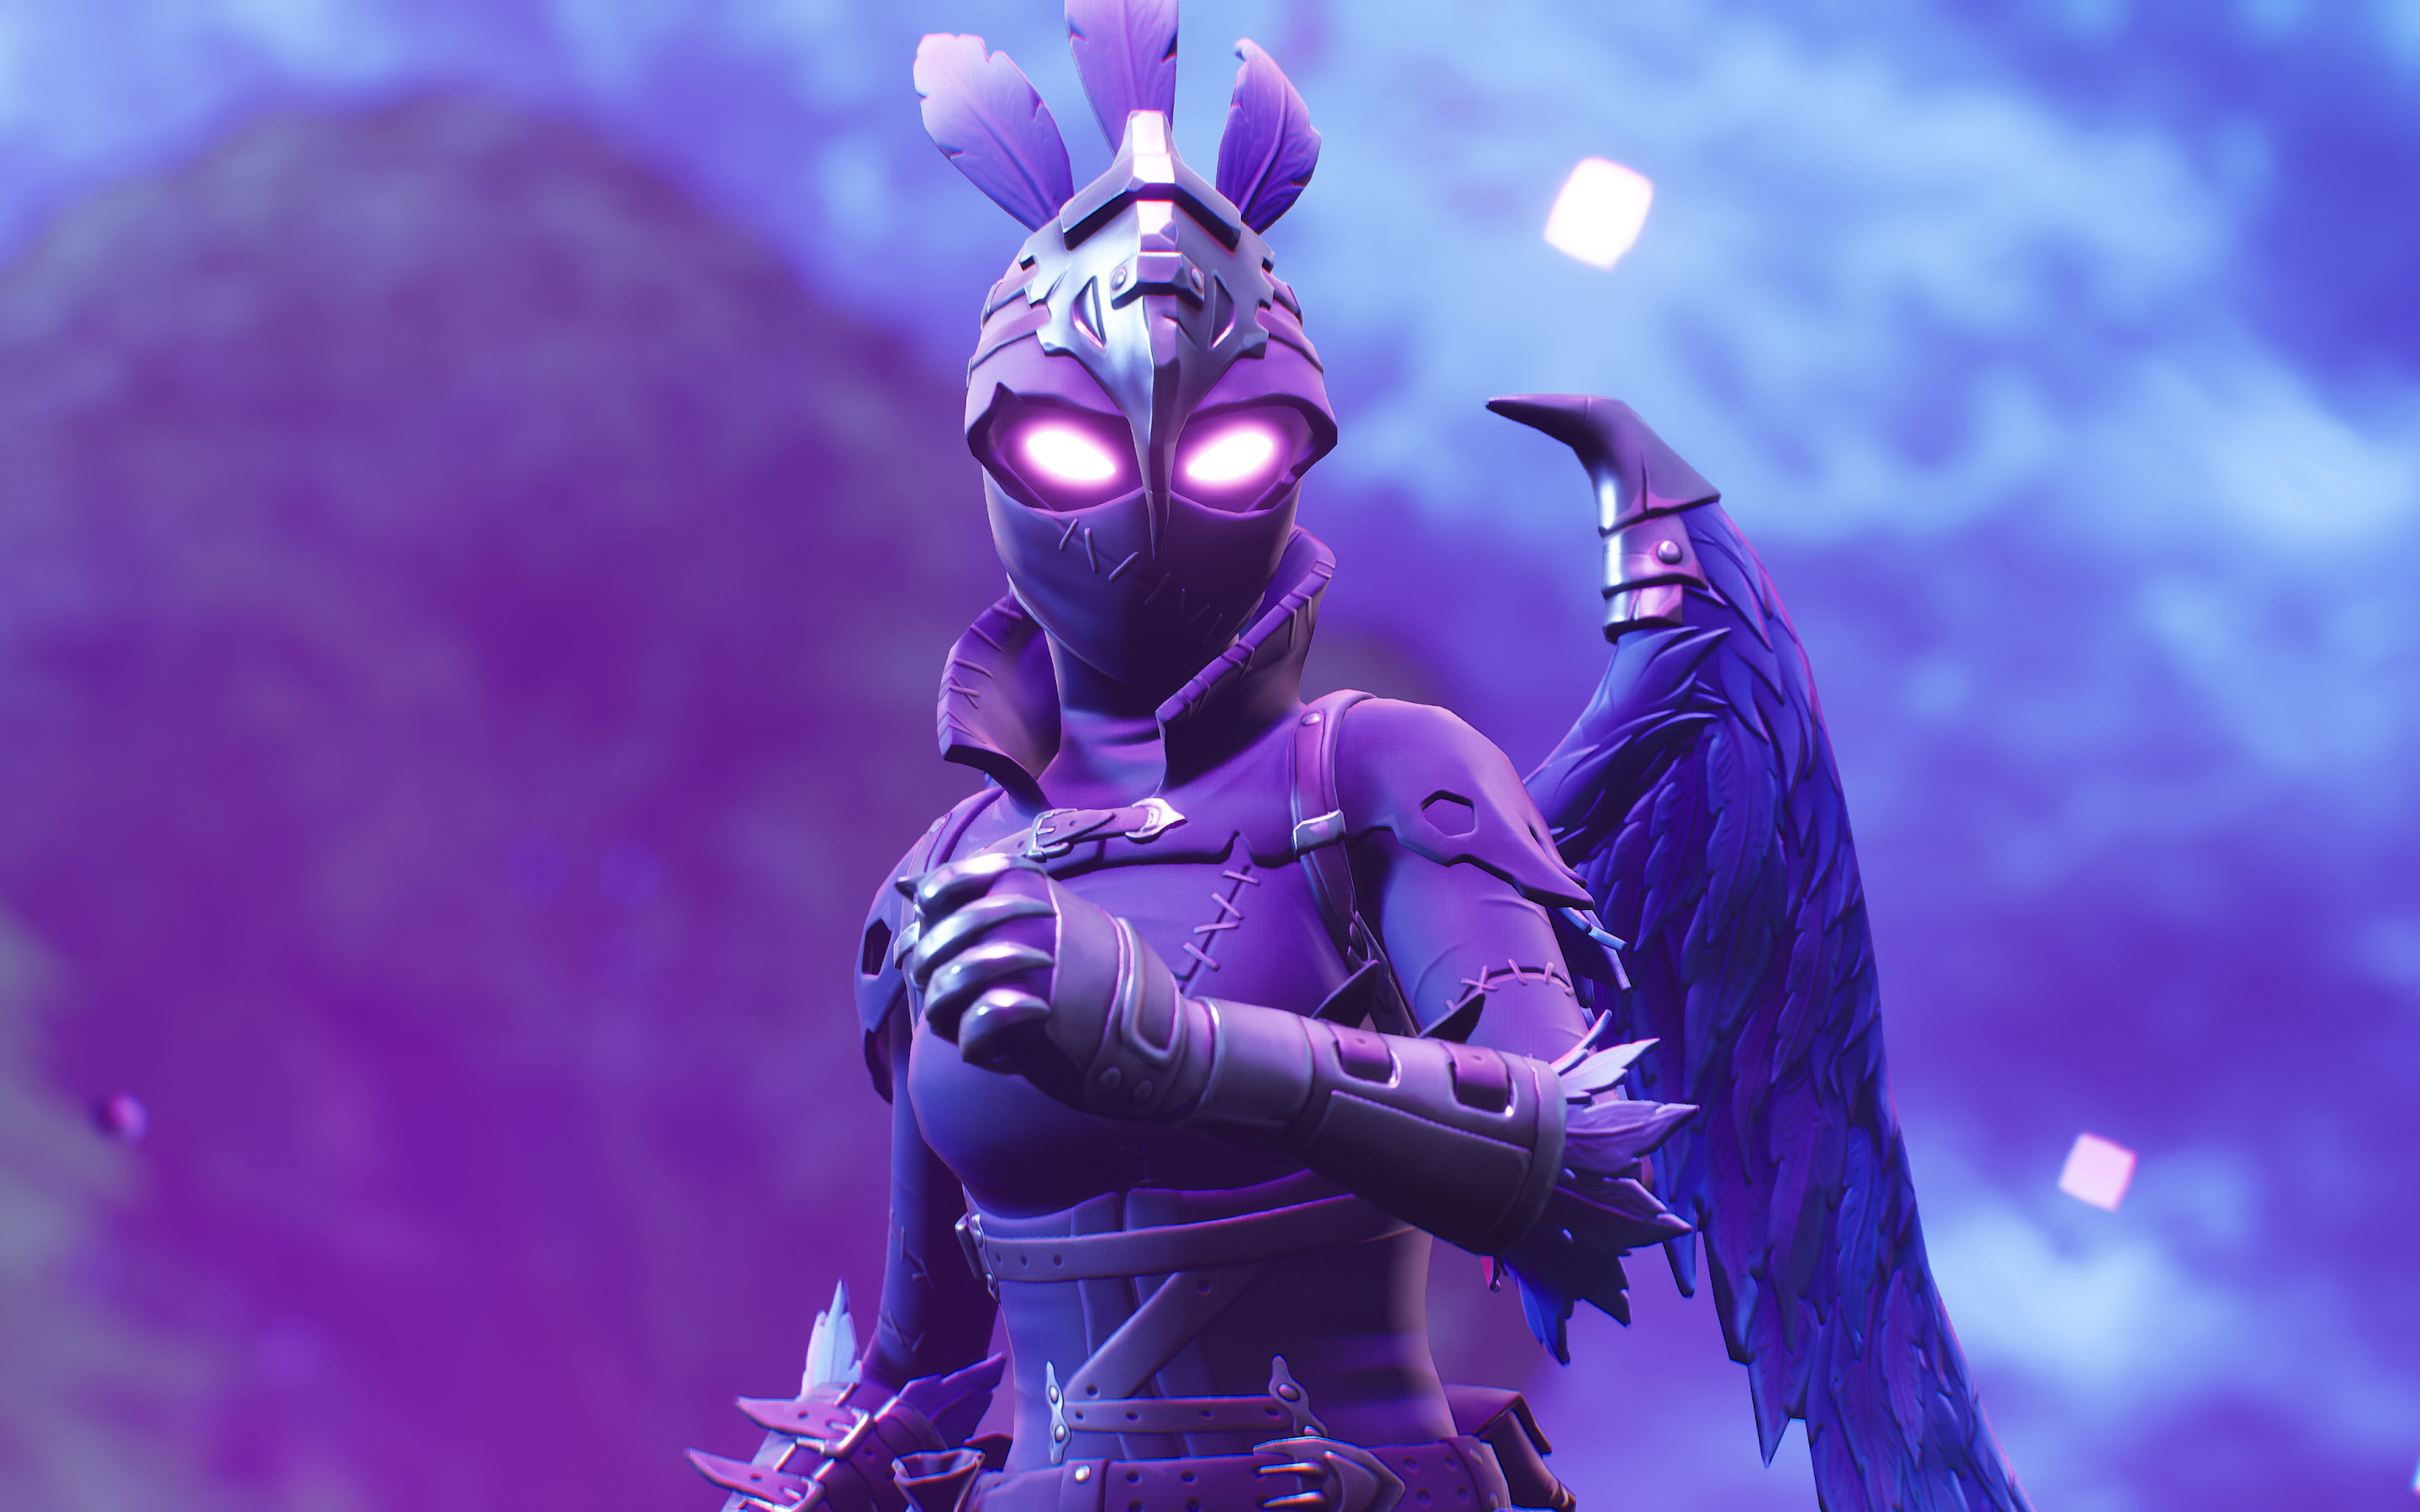 Fortnite Macbook Pro 2018 | Fortnite Free To Play Unblocked